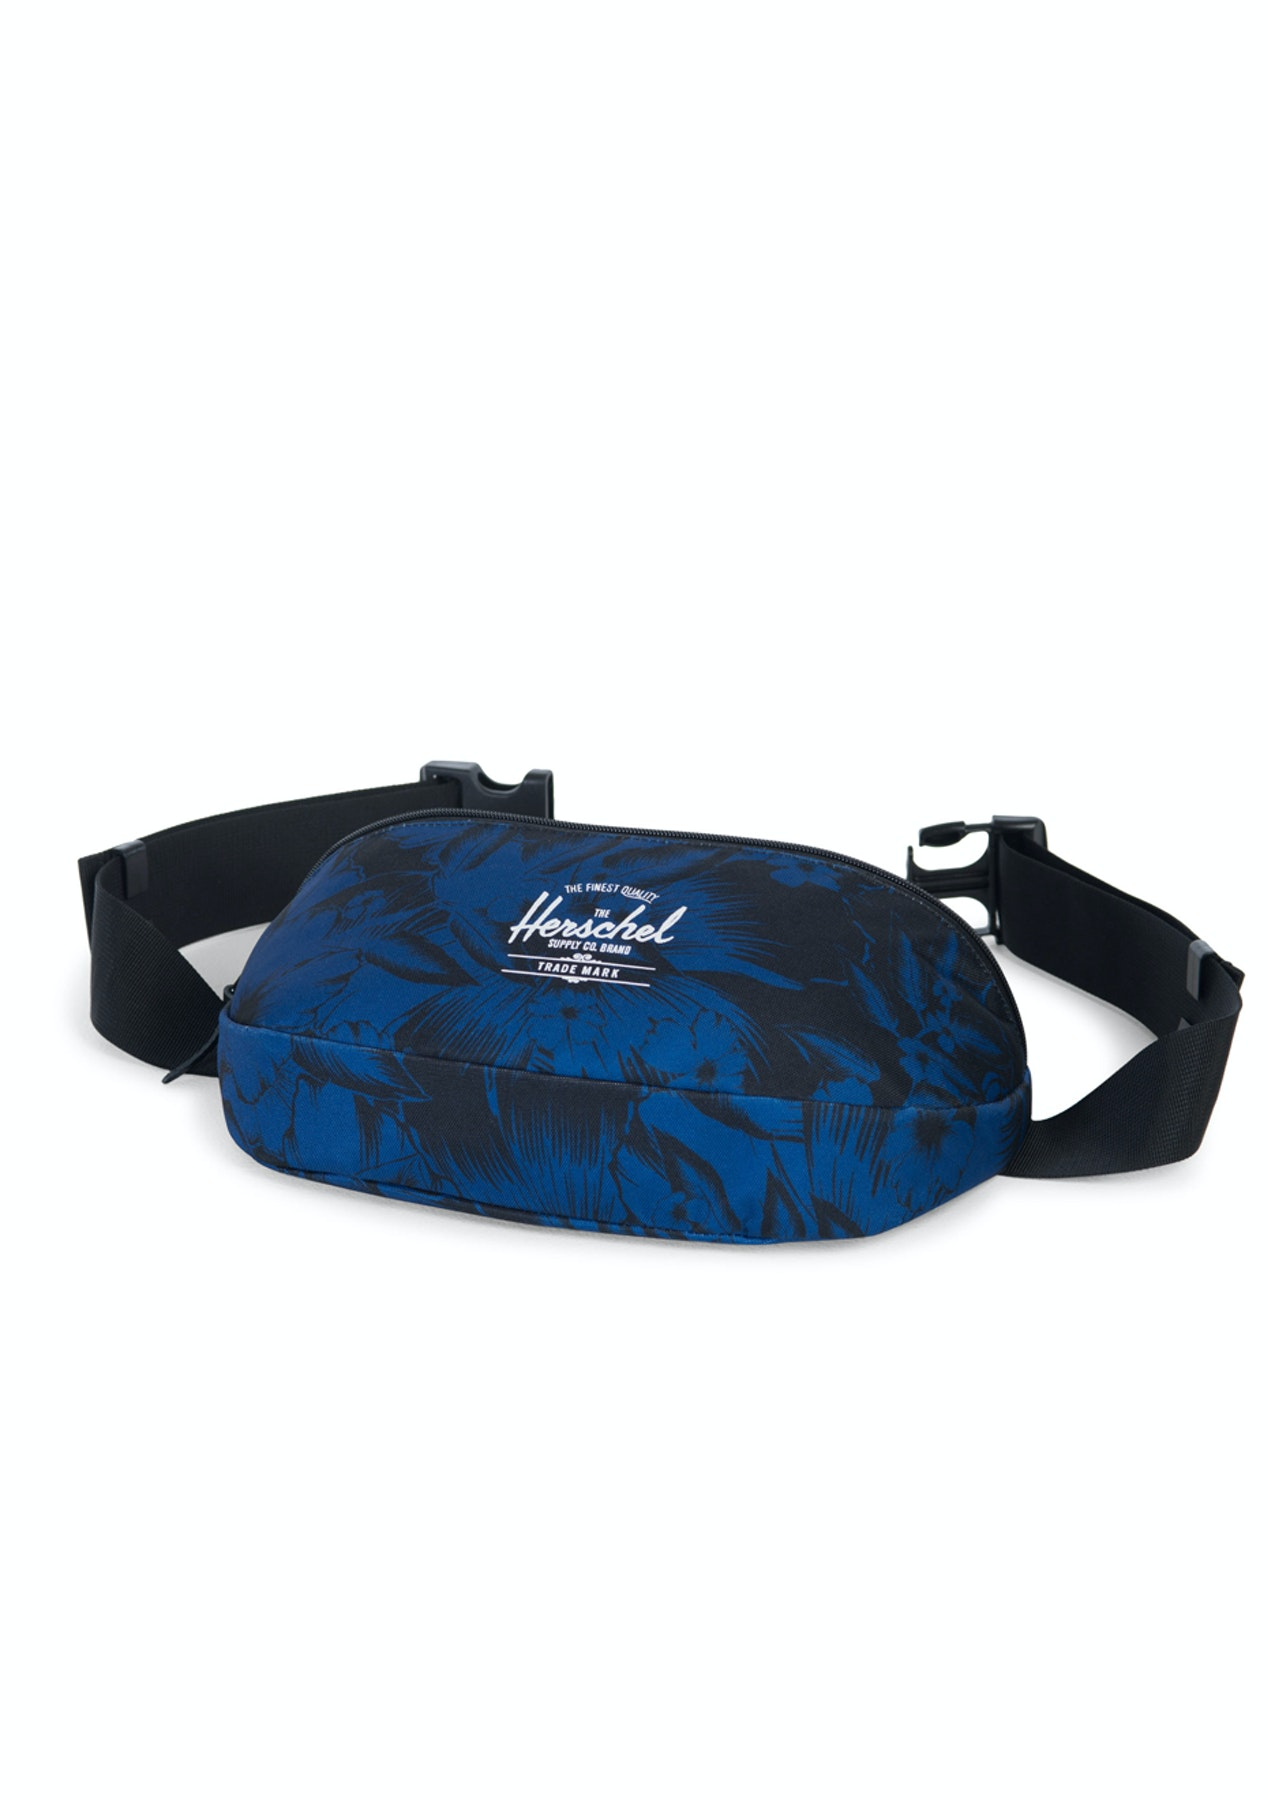 b774e1ebe79 Herschel Supply Co - Sixteen - Jungle Floral Blue - The Great Outdoor Sale  - Onceit